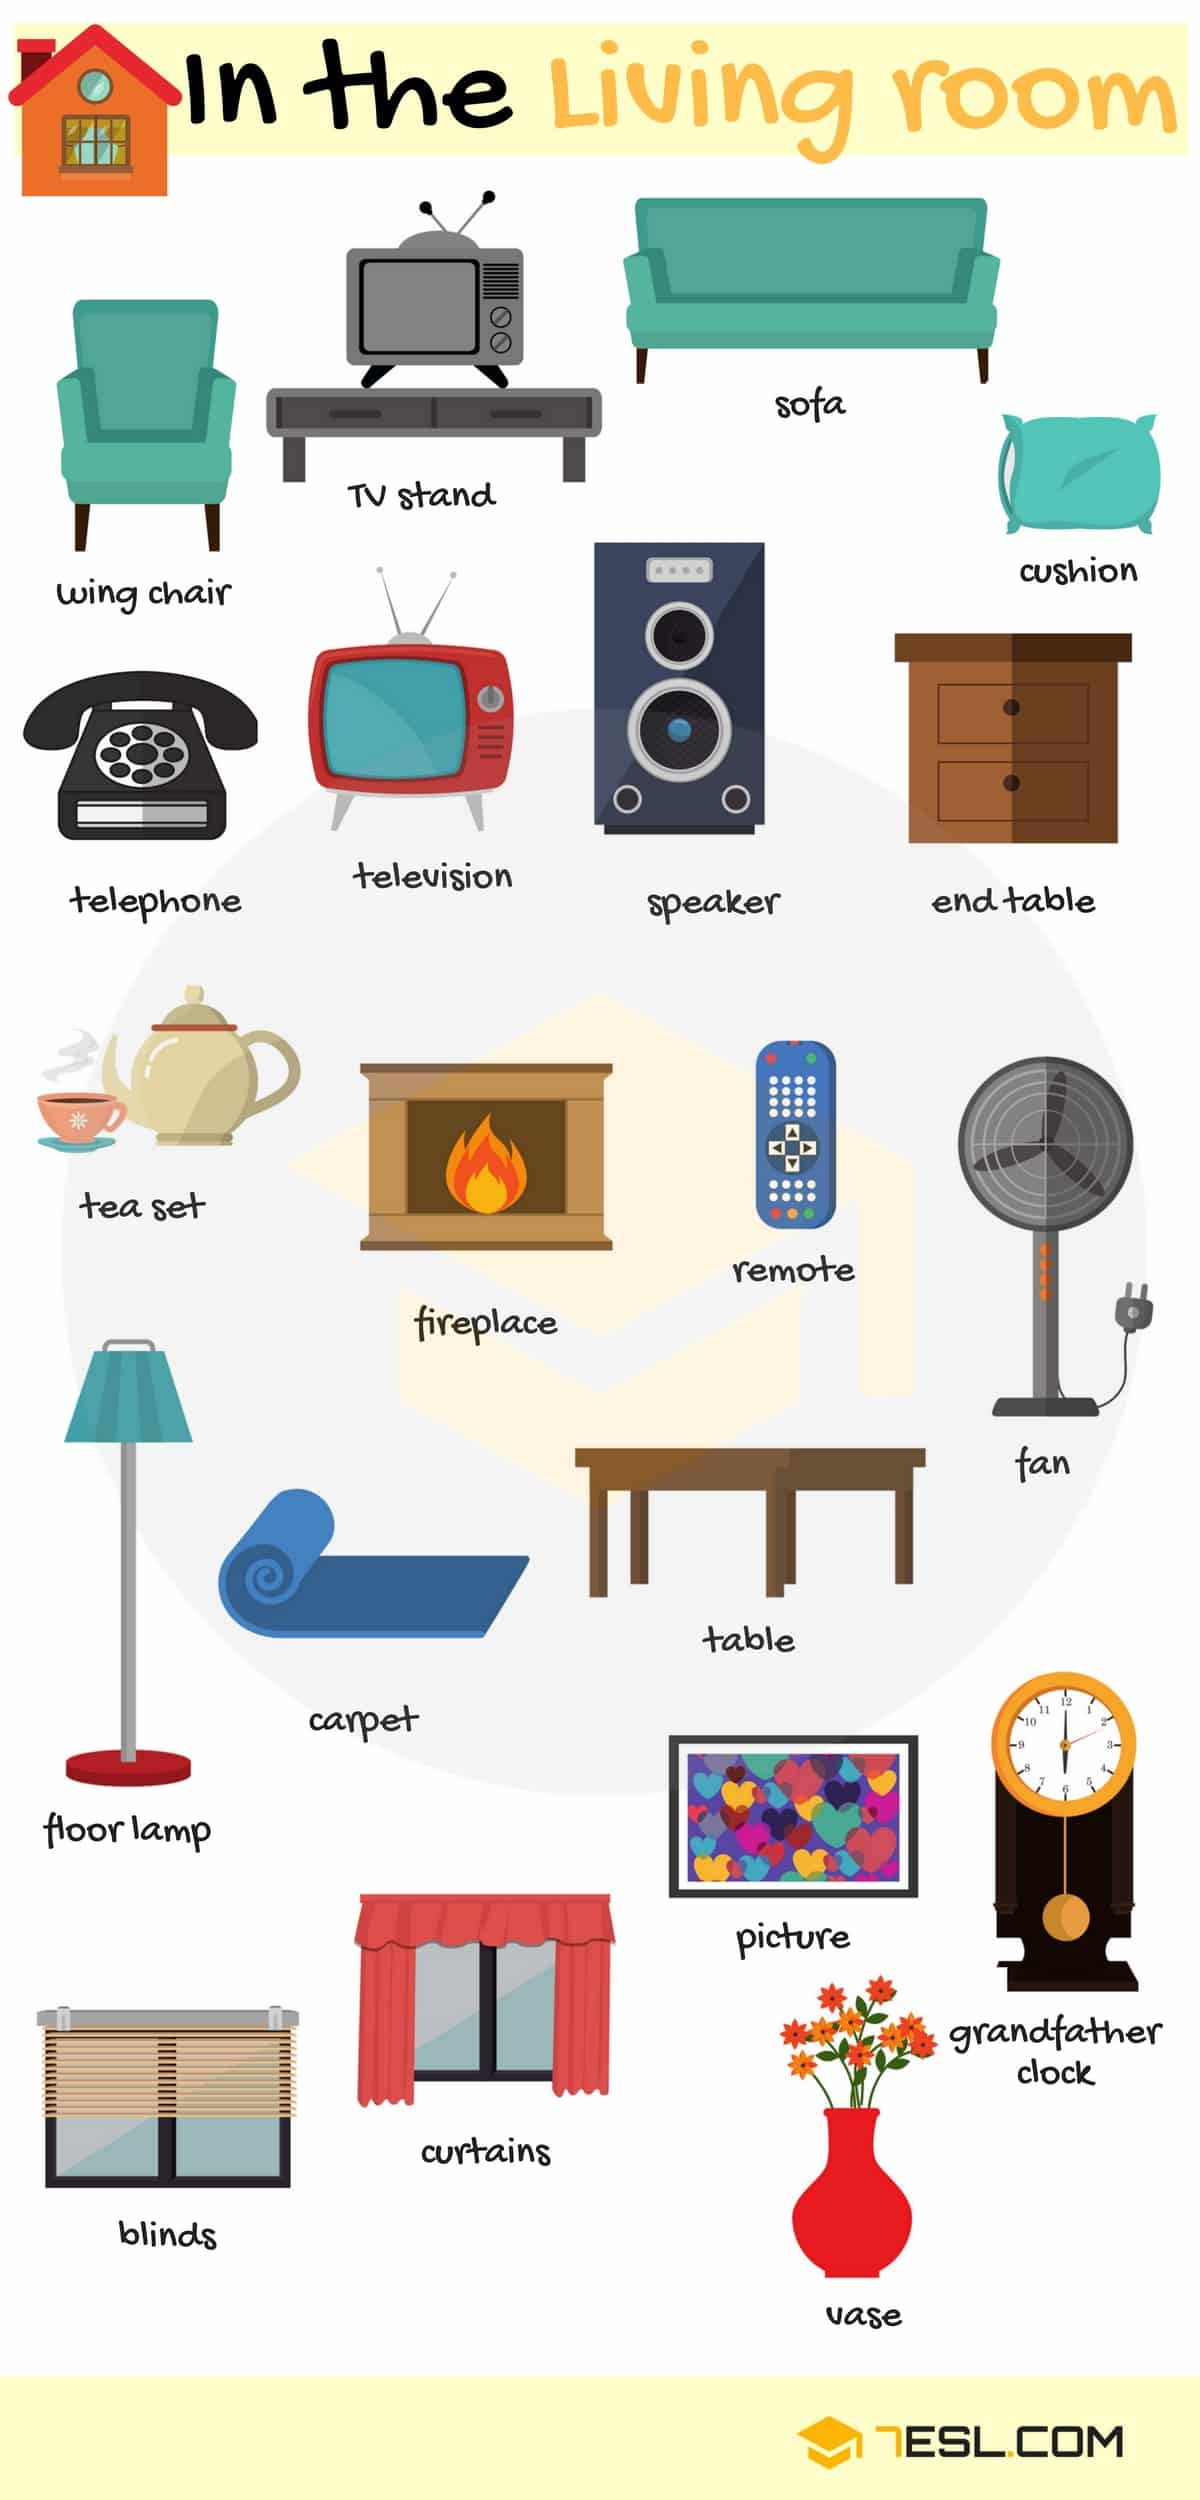 Bedroom Set Item Names